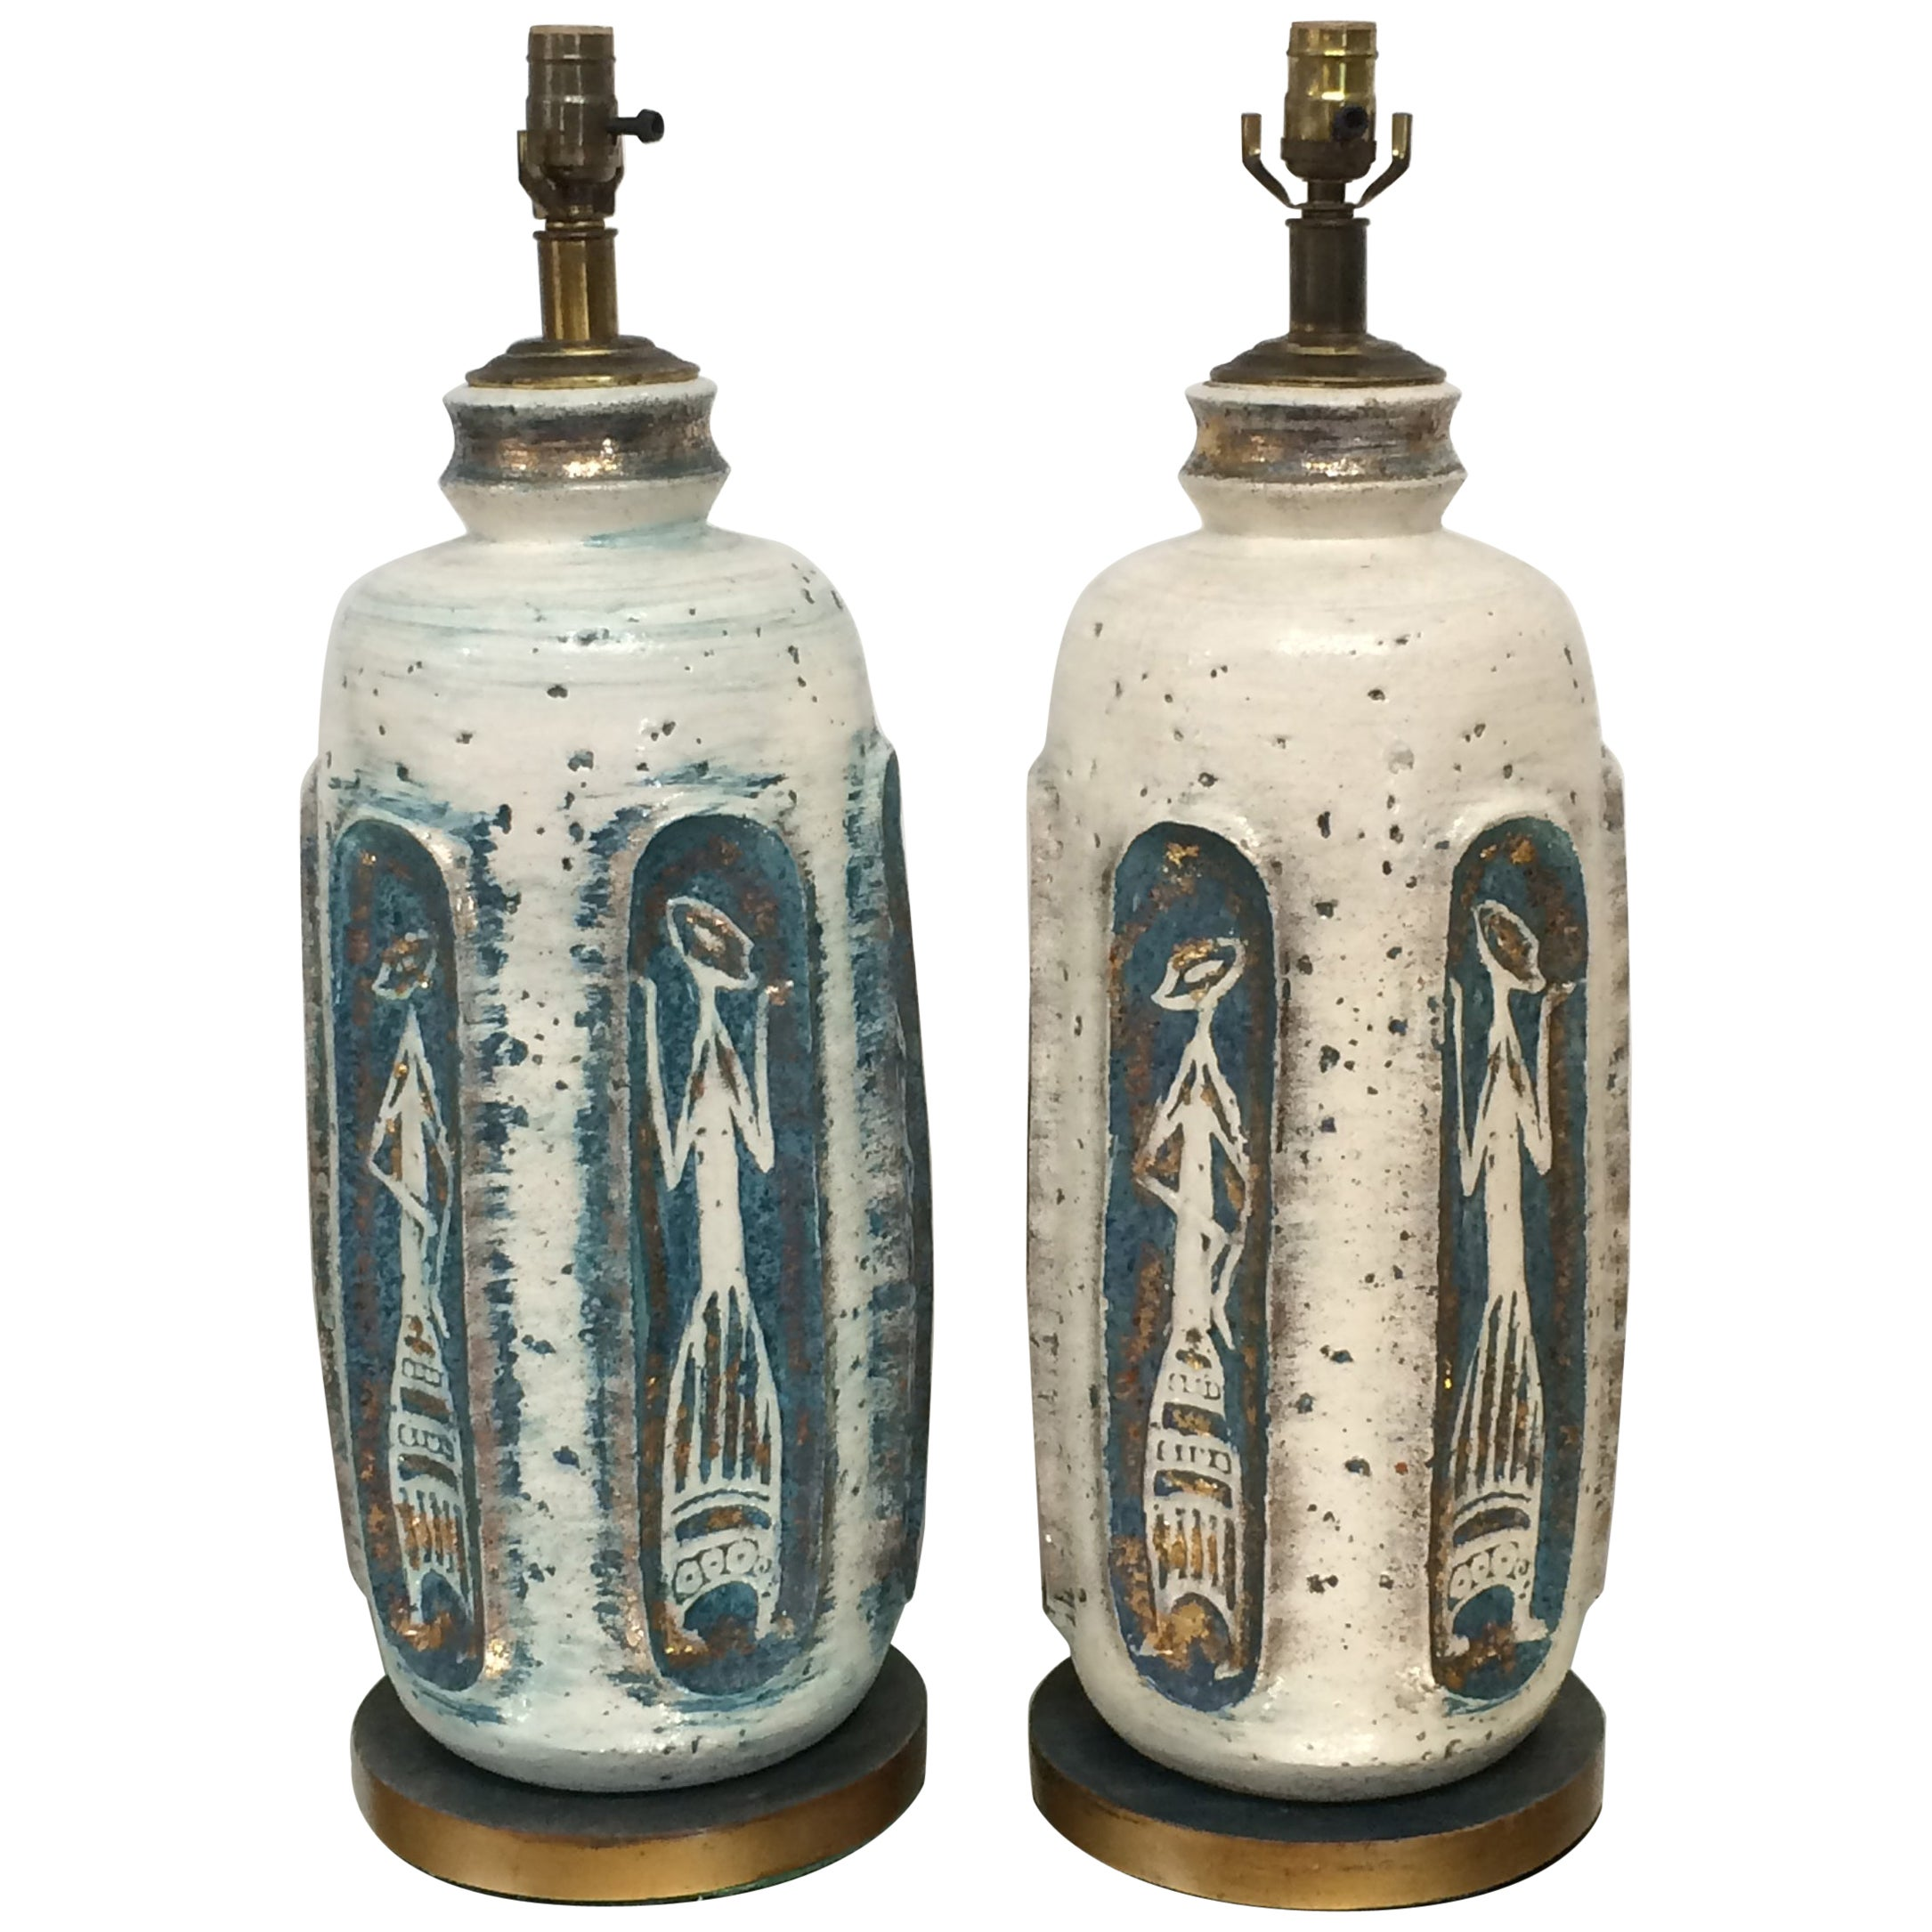 Tye of California Pottery Table Lamps a Pair, 1950s